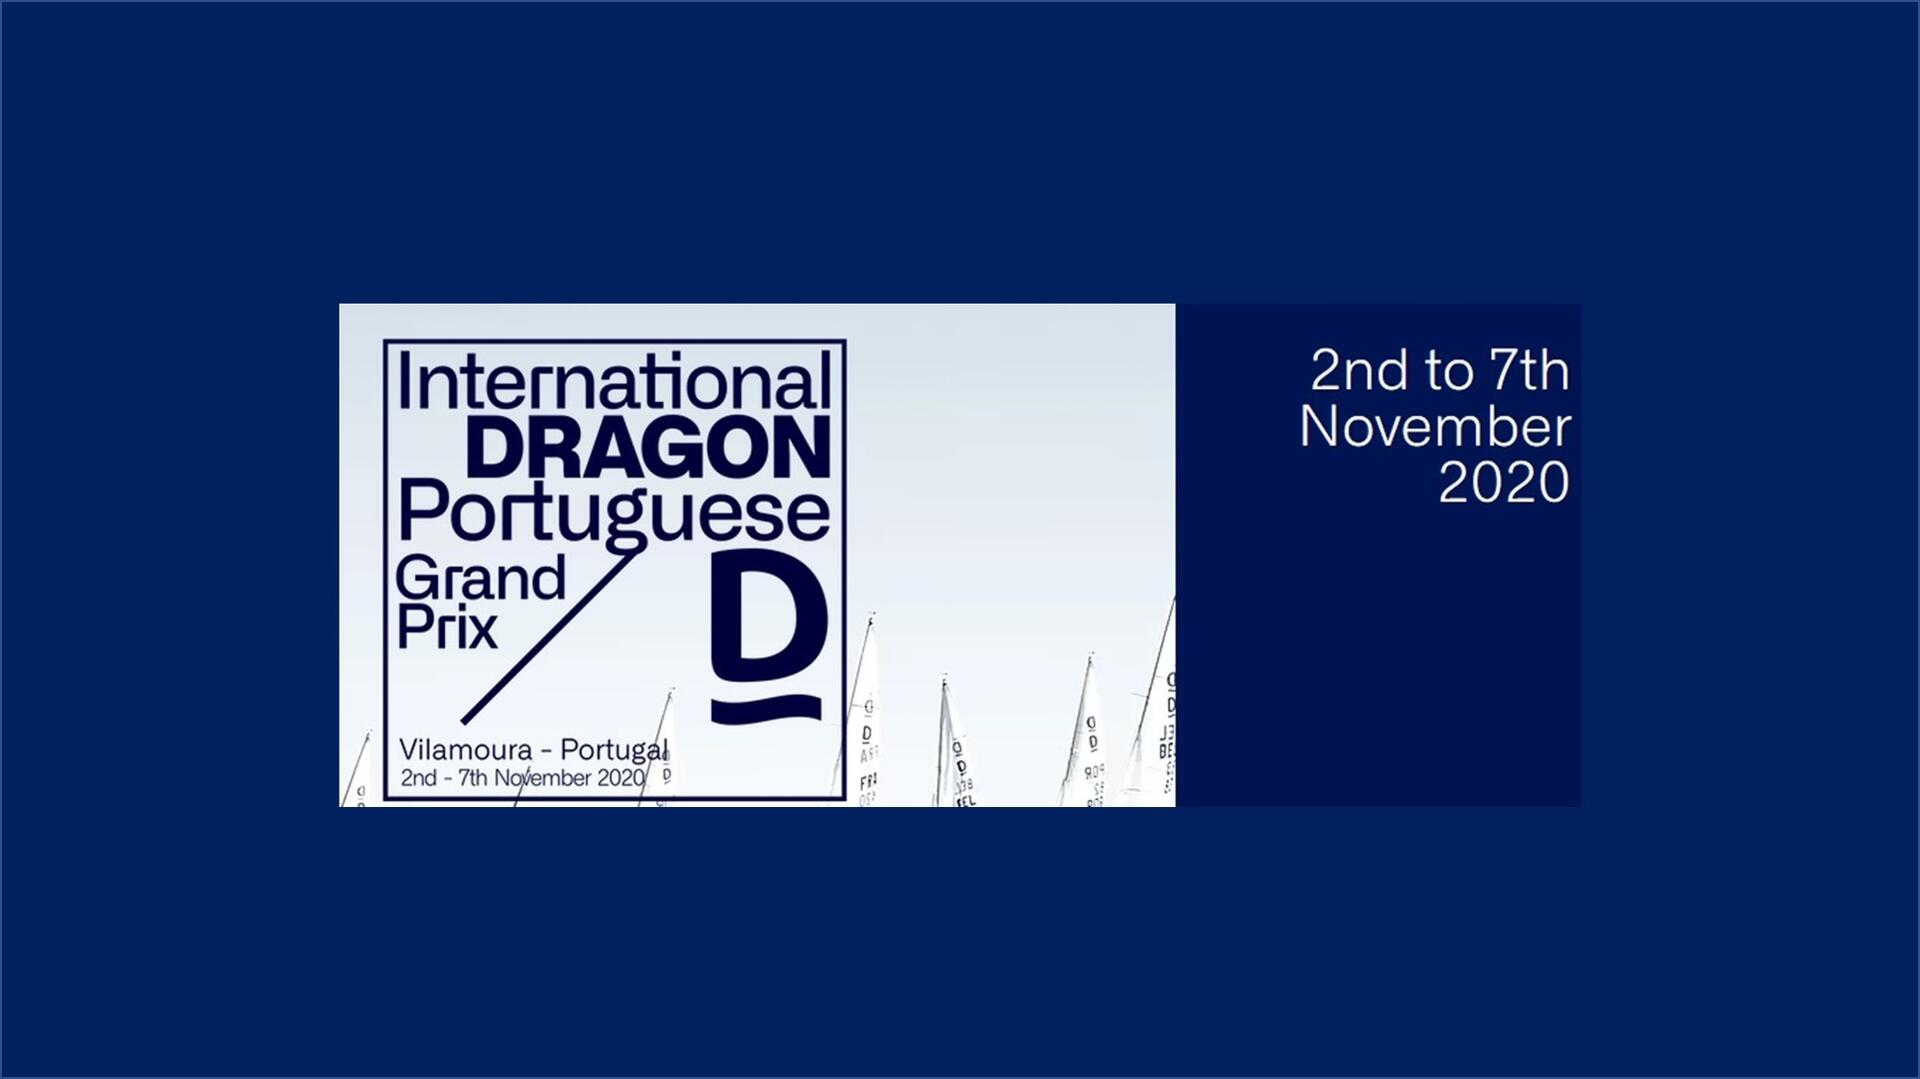 International Dragon Portuguese Grand Prix